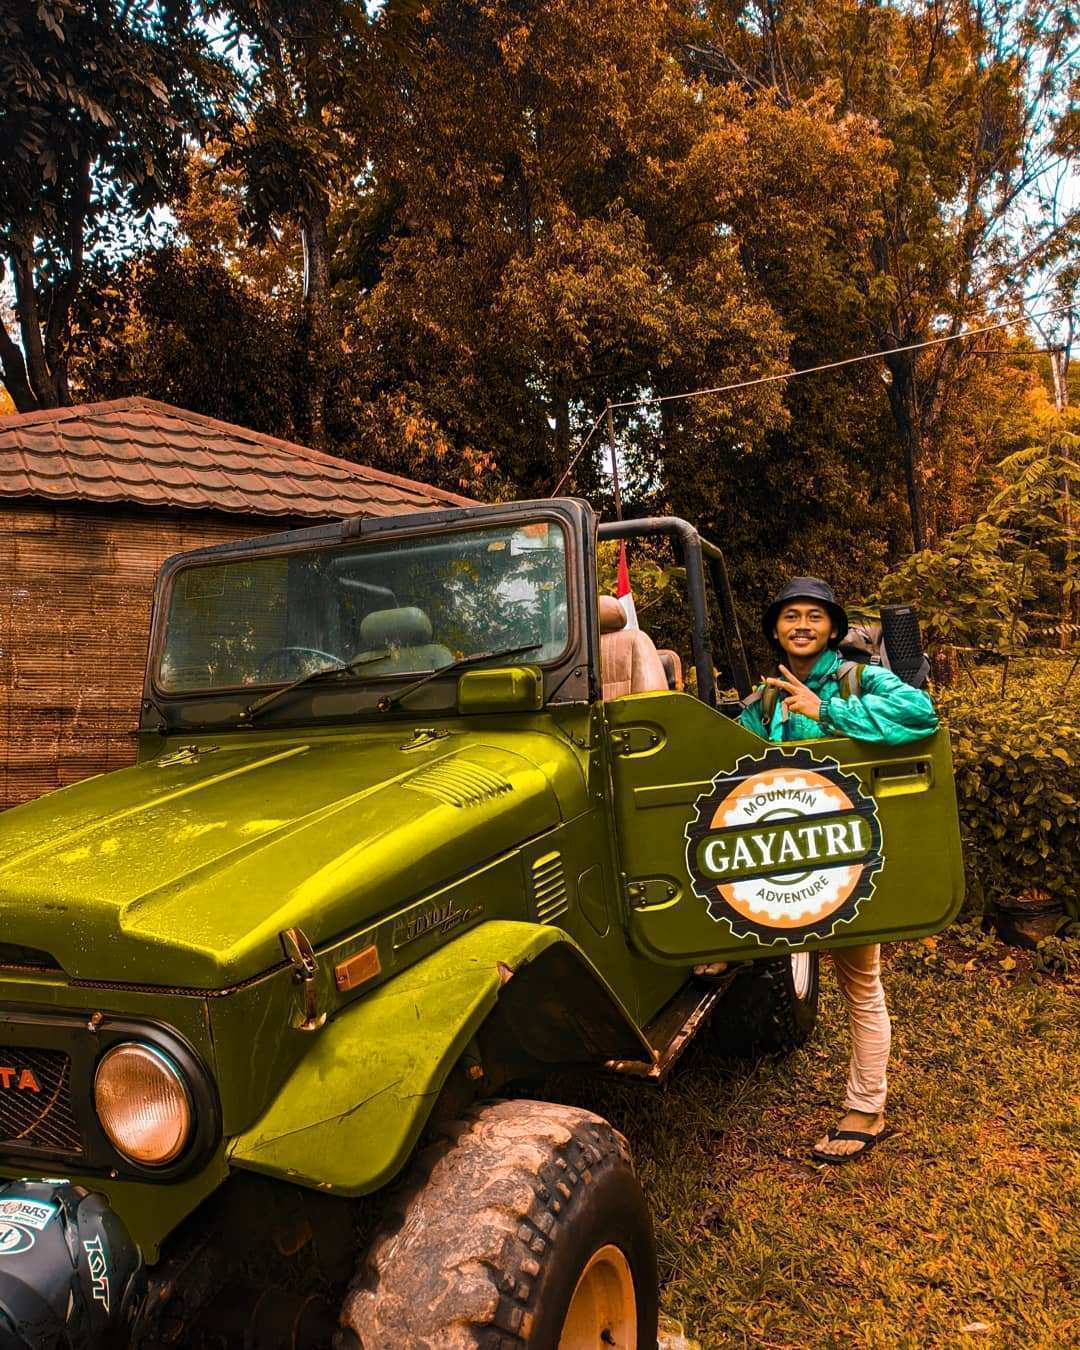 Jeep di Gayatri Mountain Adventure, Image From @hpradanaa22